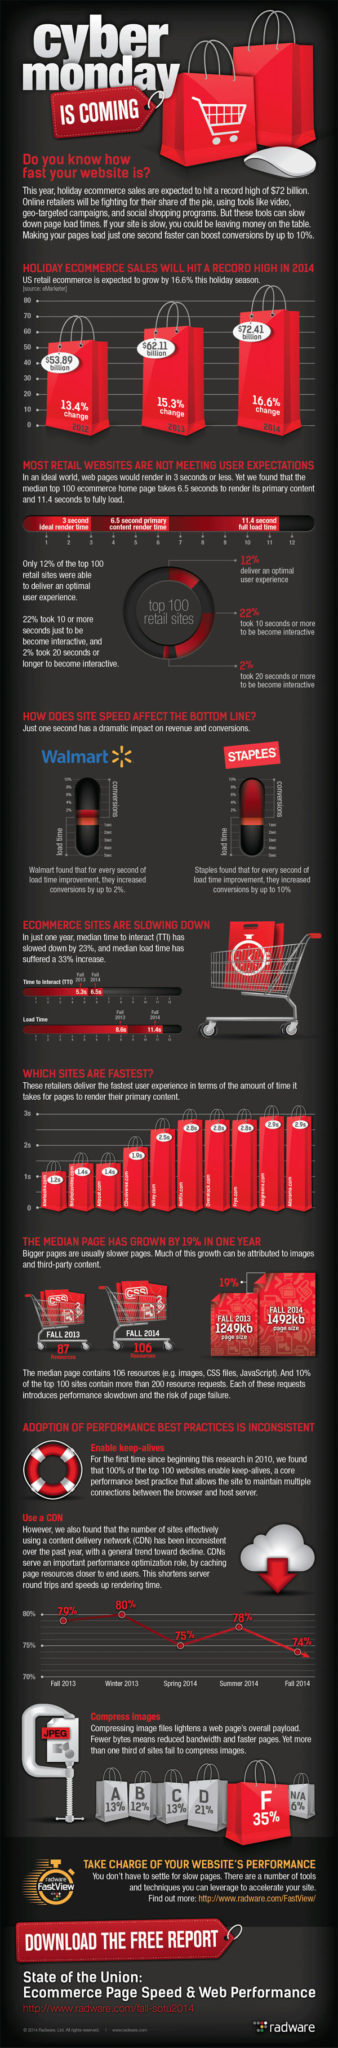 cyber-monday-ecommerce-infographic